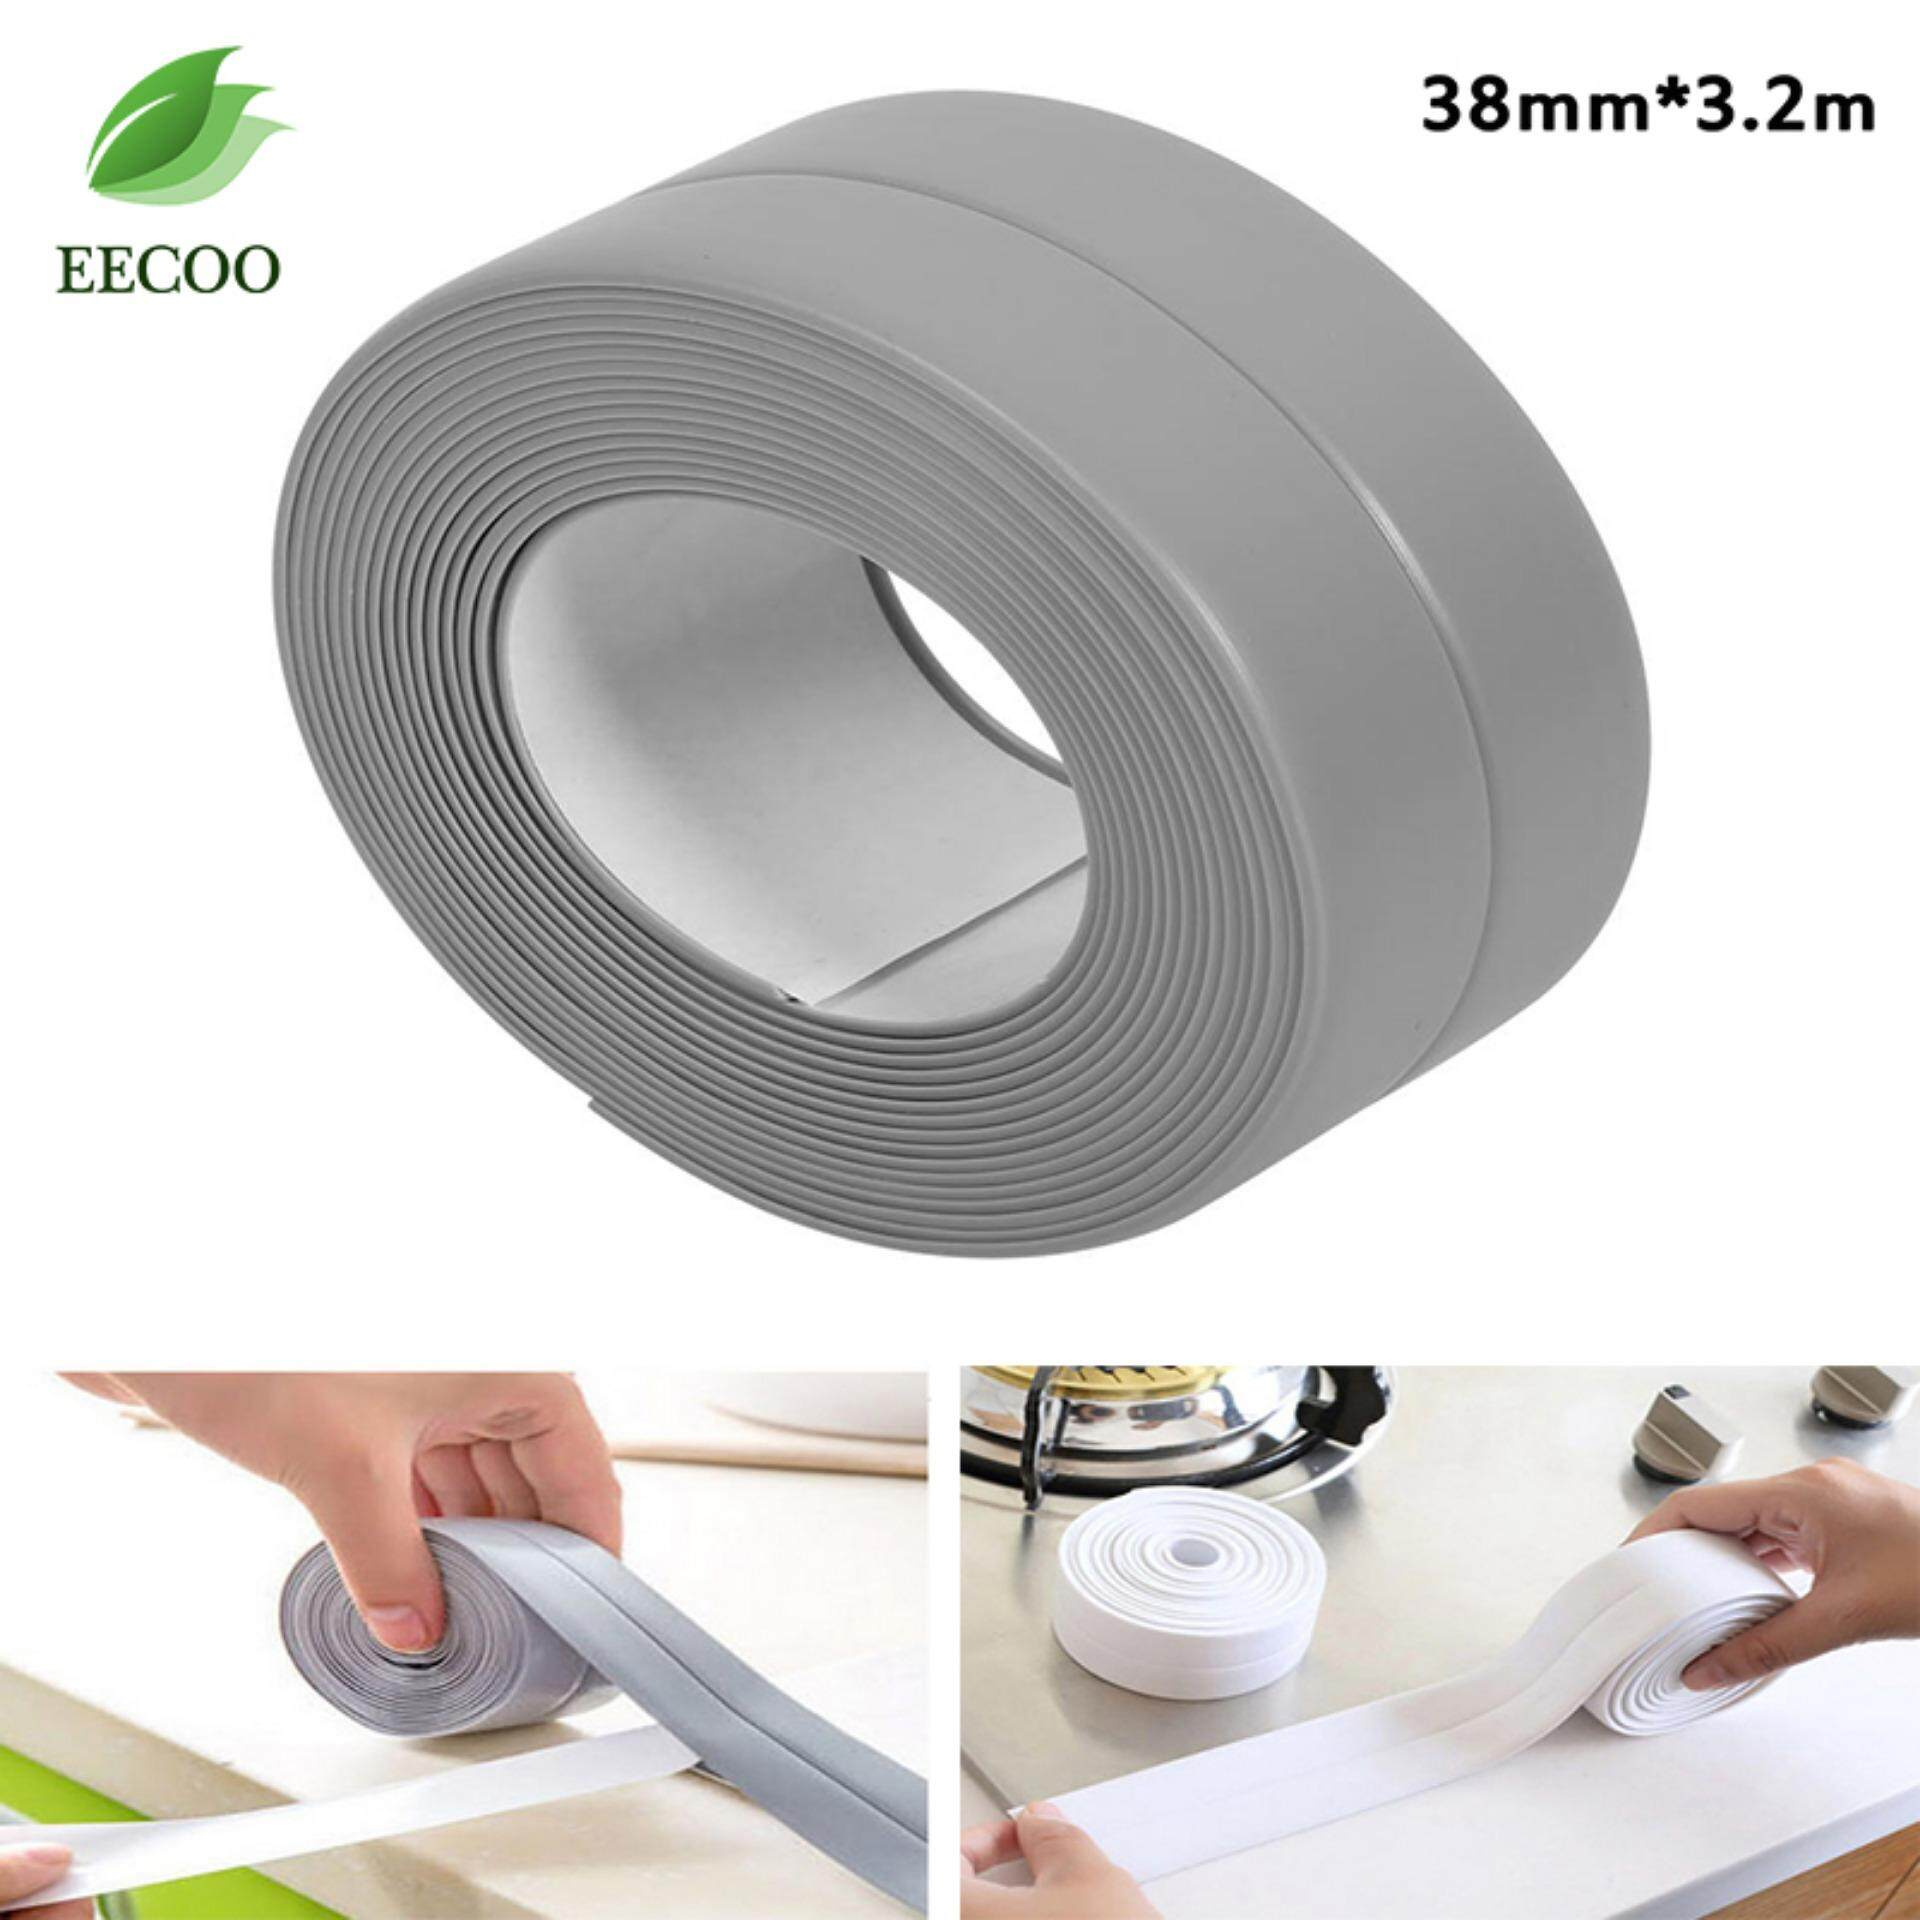 Home Diy Bath And Wall Sealing Sticky Band Strip Kitchen Sink Basin Edge Trim Tool